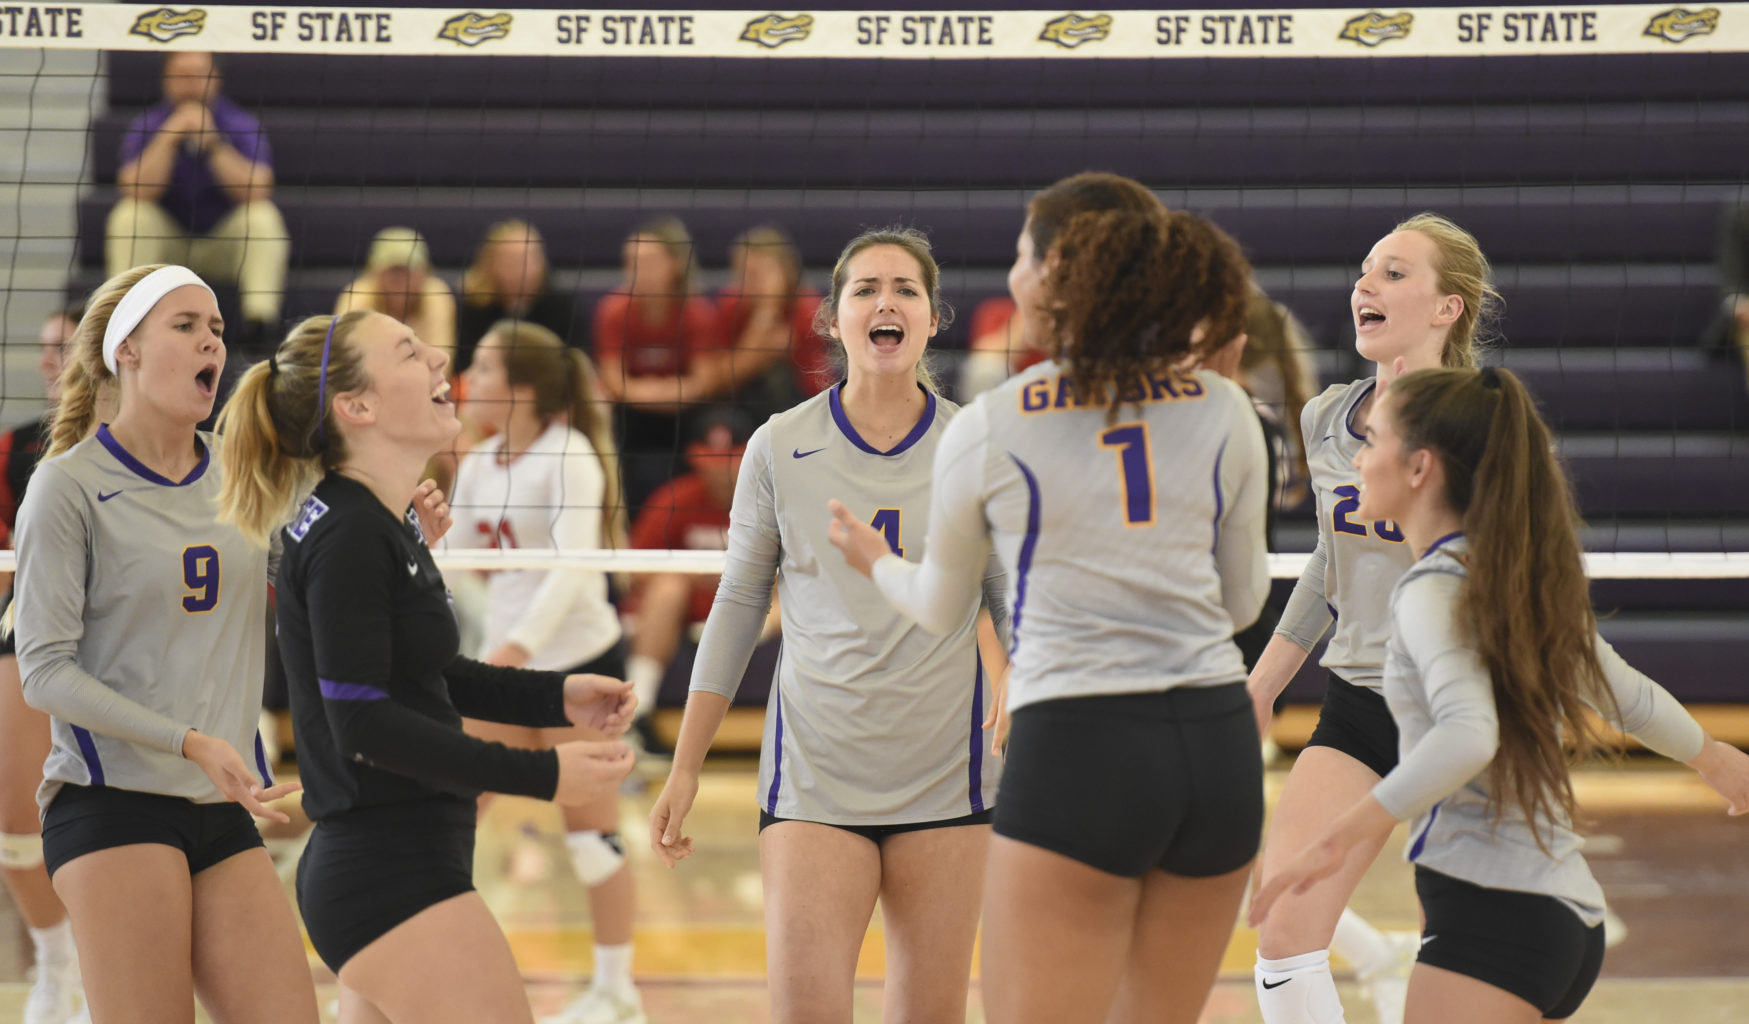 Drew Morris (1), Lauren Williams (4), Jessica Haynie (9) and Payton Jensen (20) celebrate with their teammates at the D2 West Region Showcase. (Cody Glen / SF State)